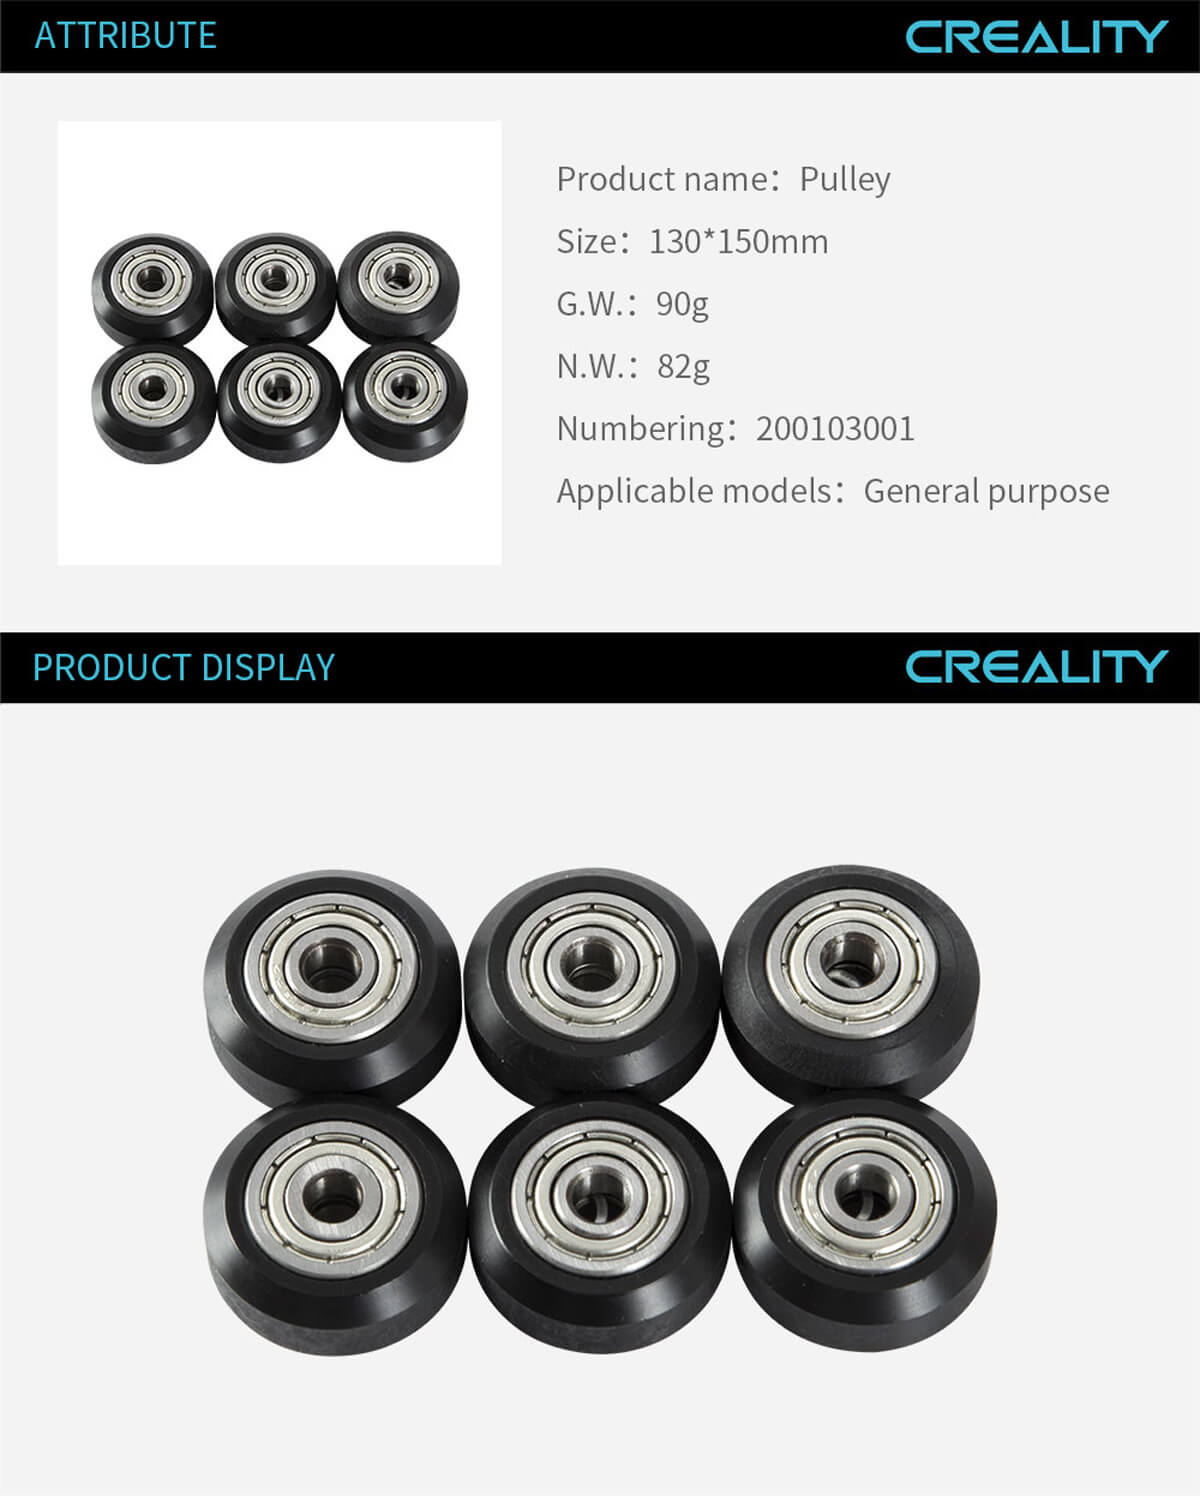 creality-3d-printer-Pulley-11